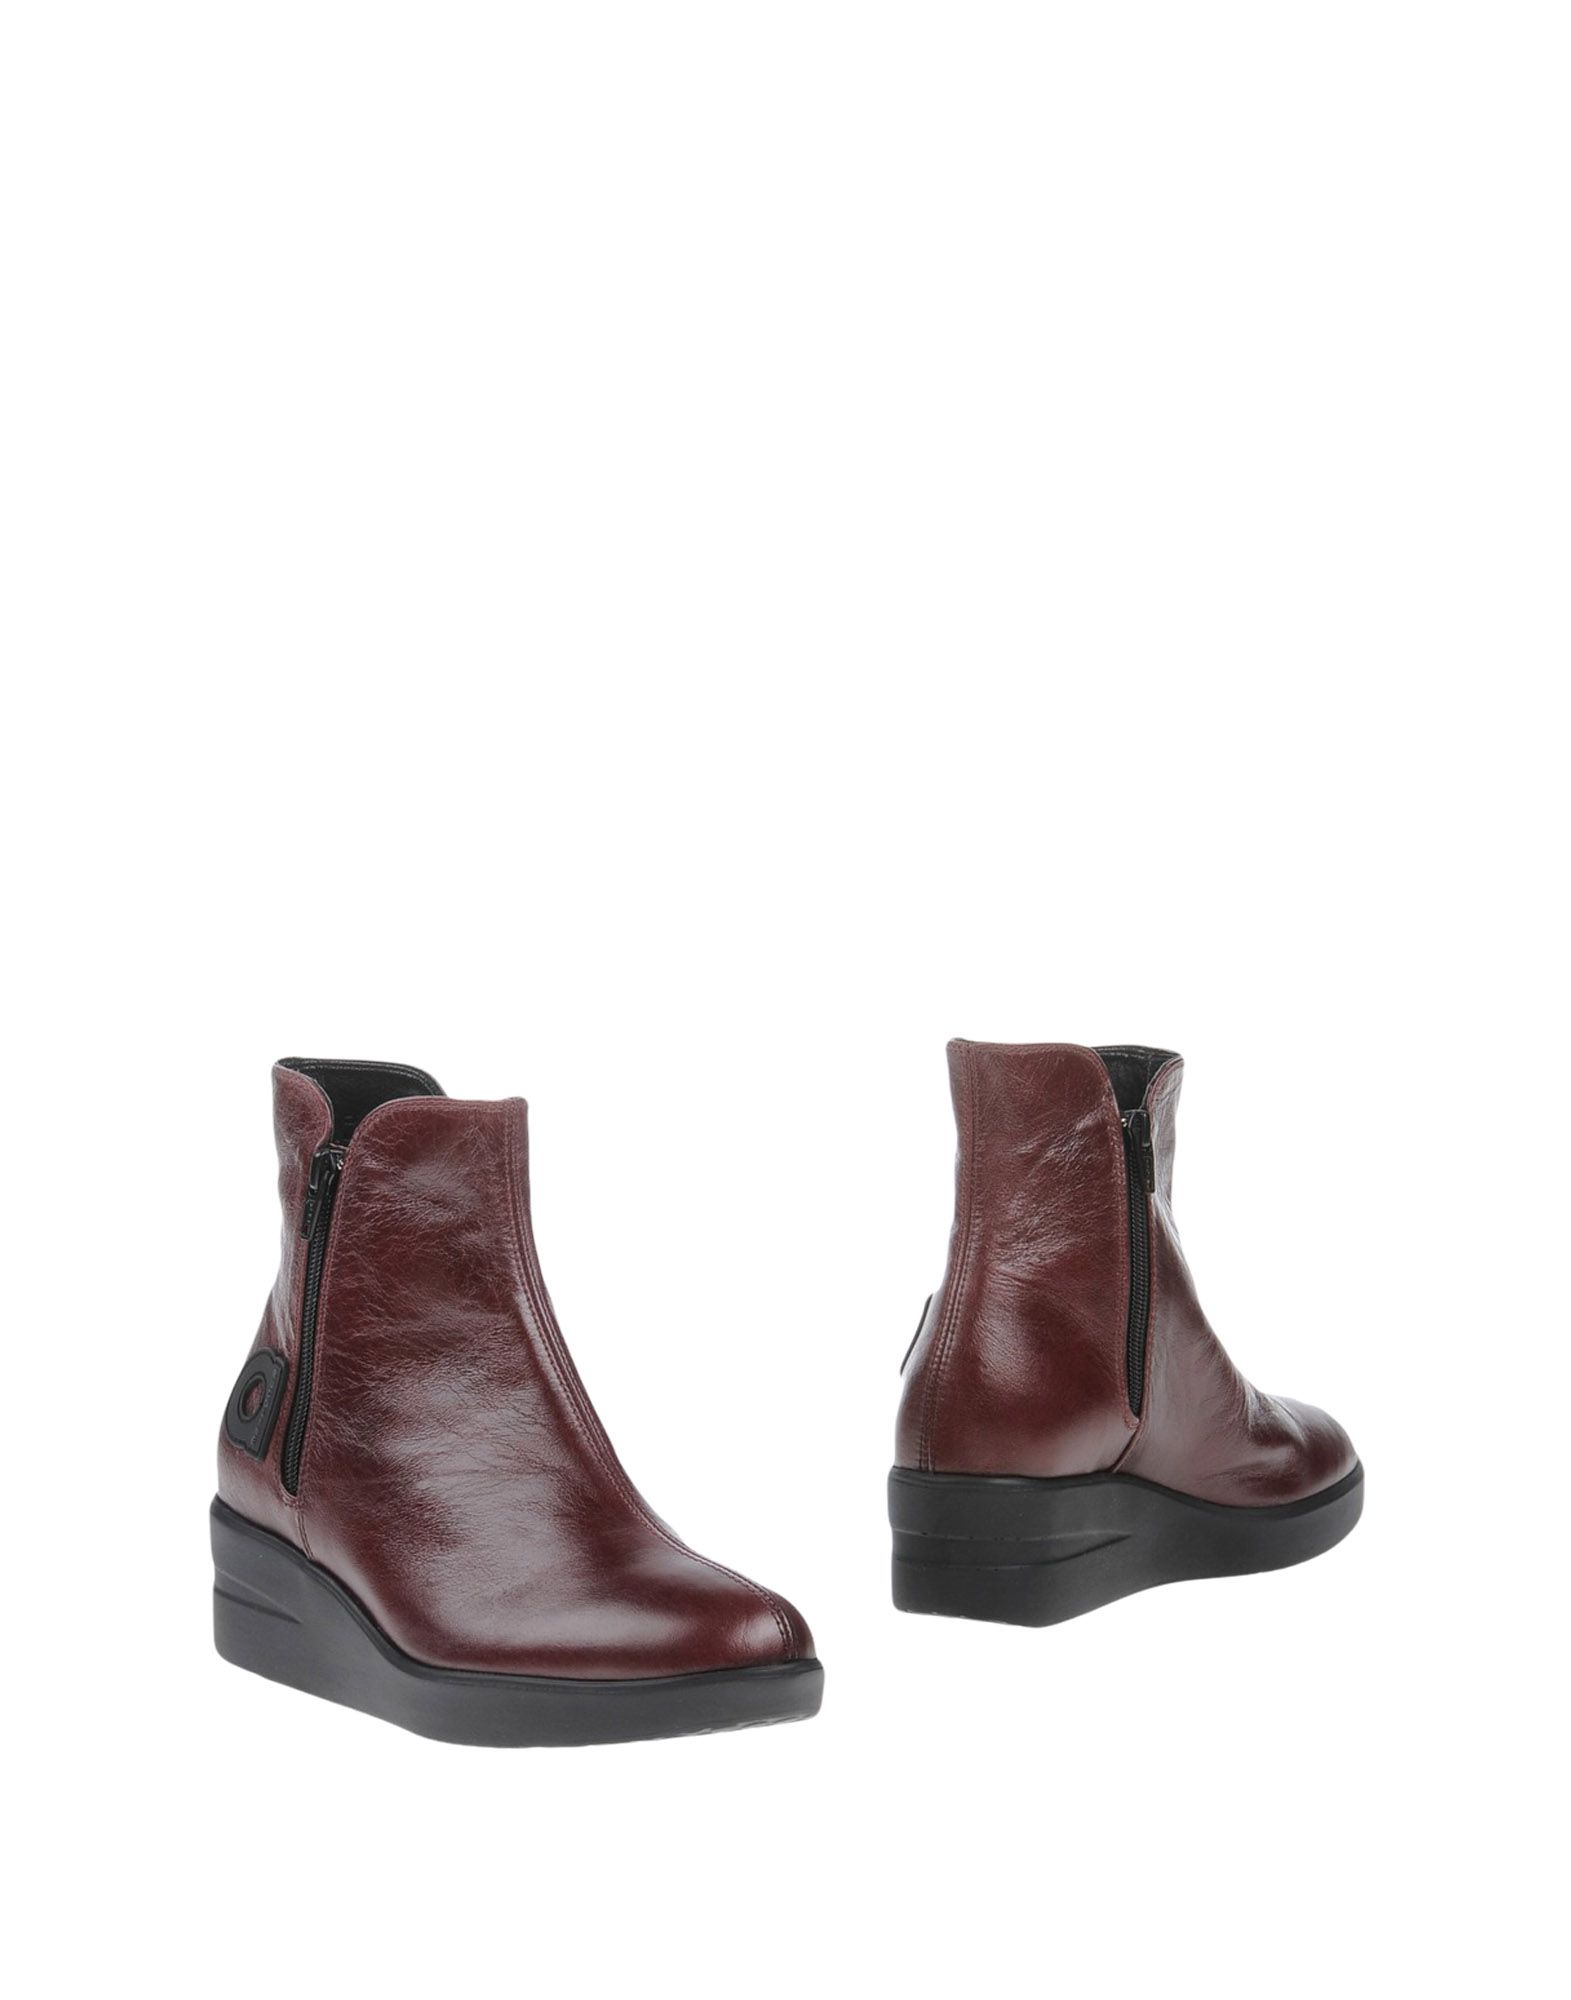 Bottine Agile By Rucoline Femme - Bottines Agile By Rucoline Bordeaux Remise de marque